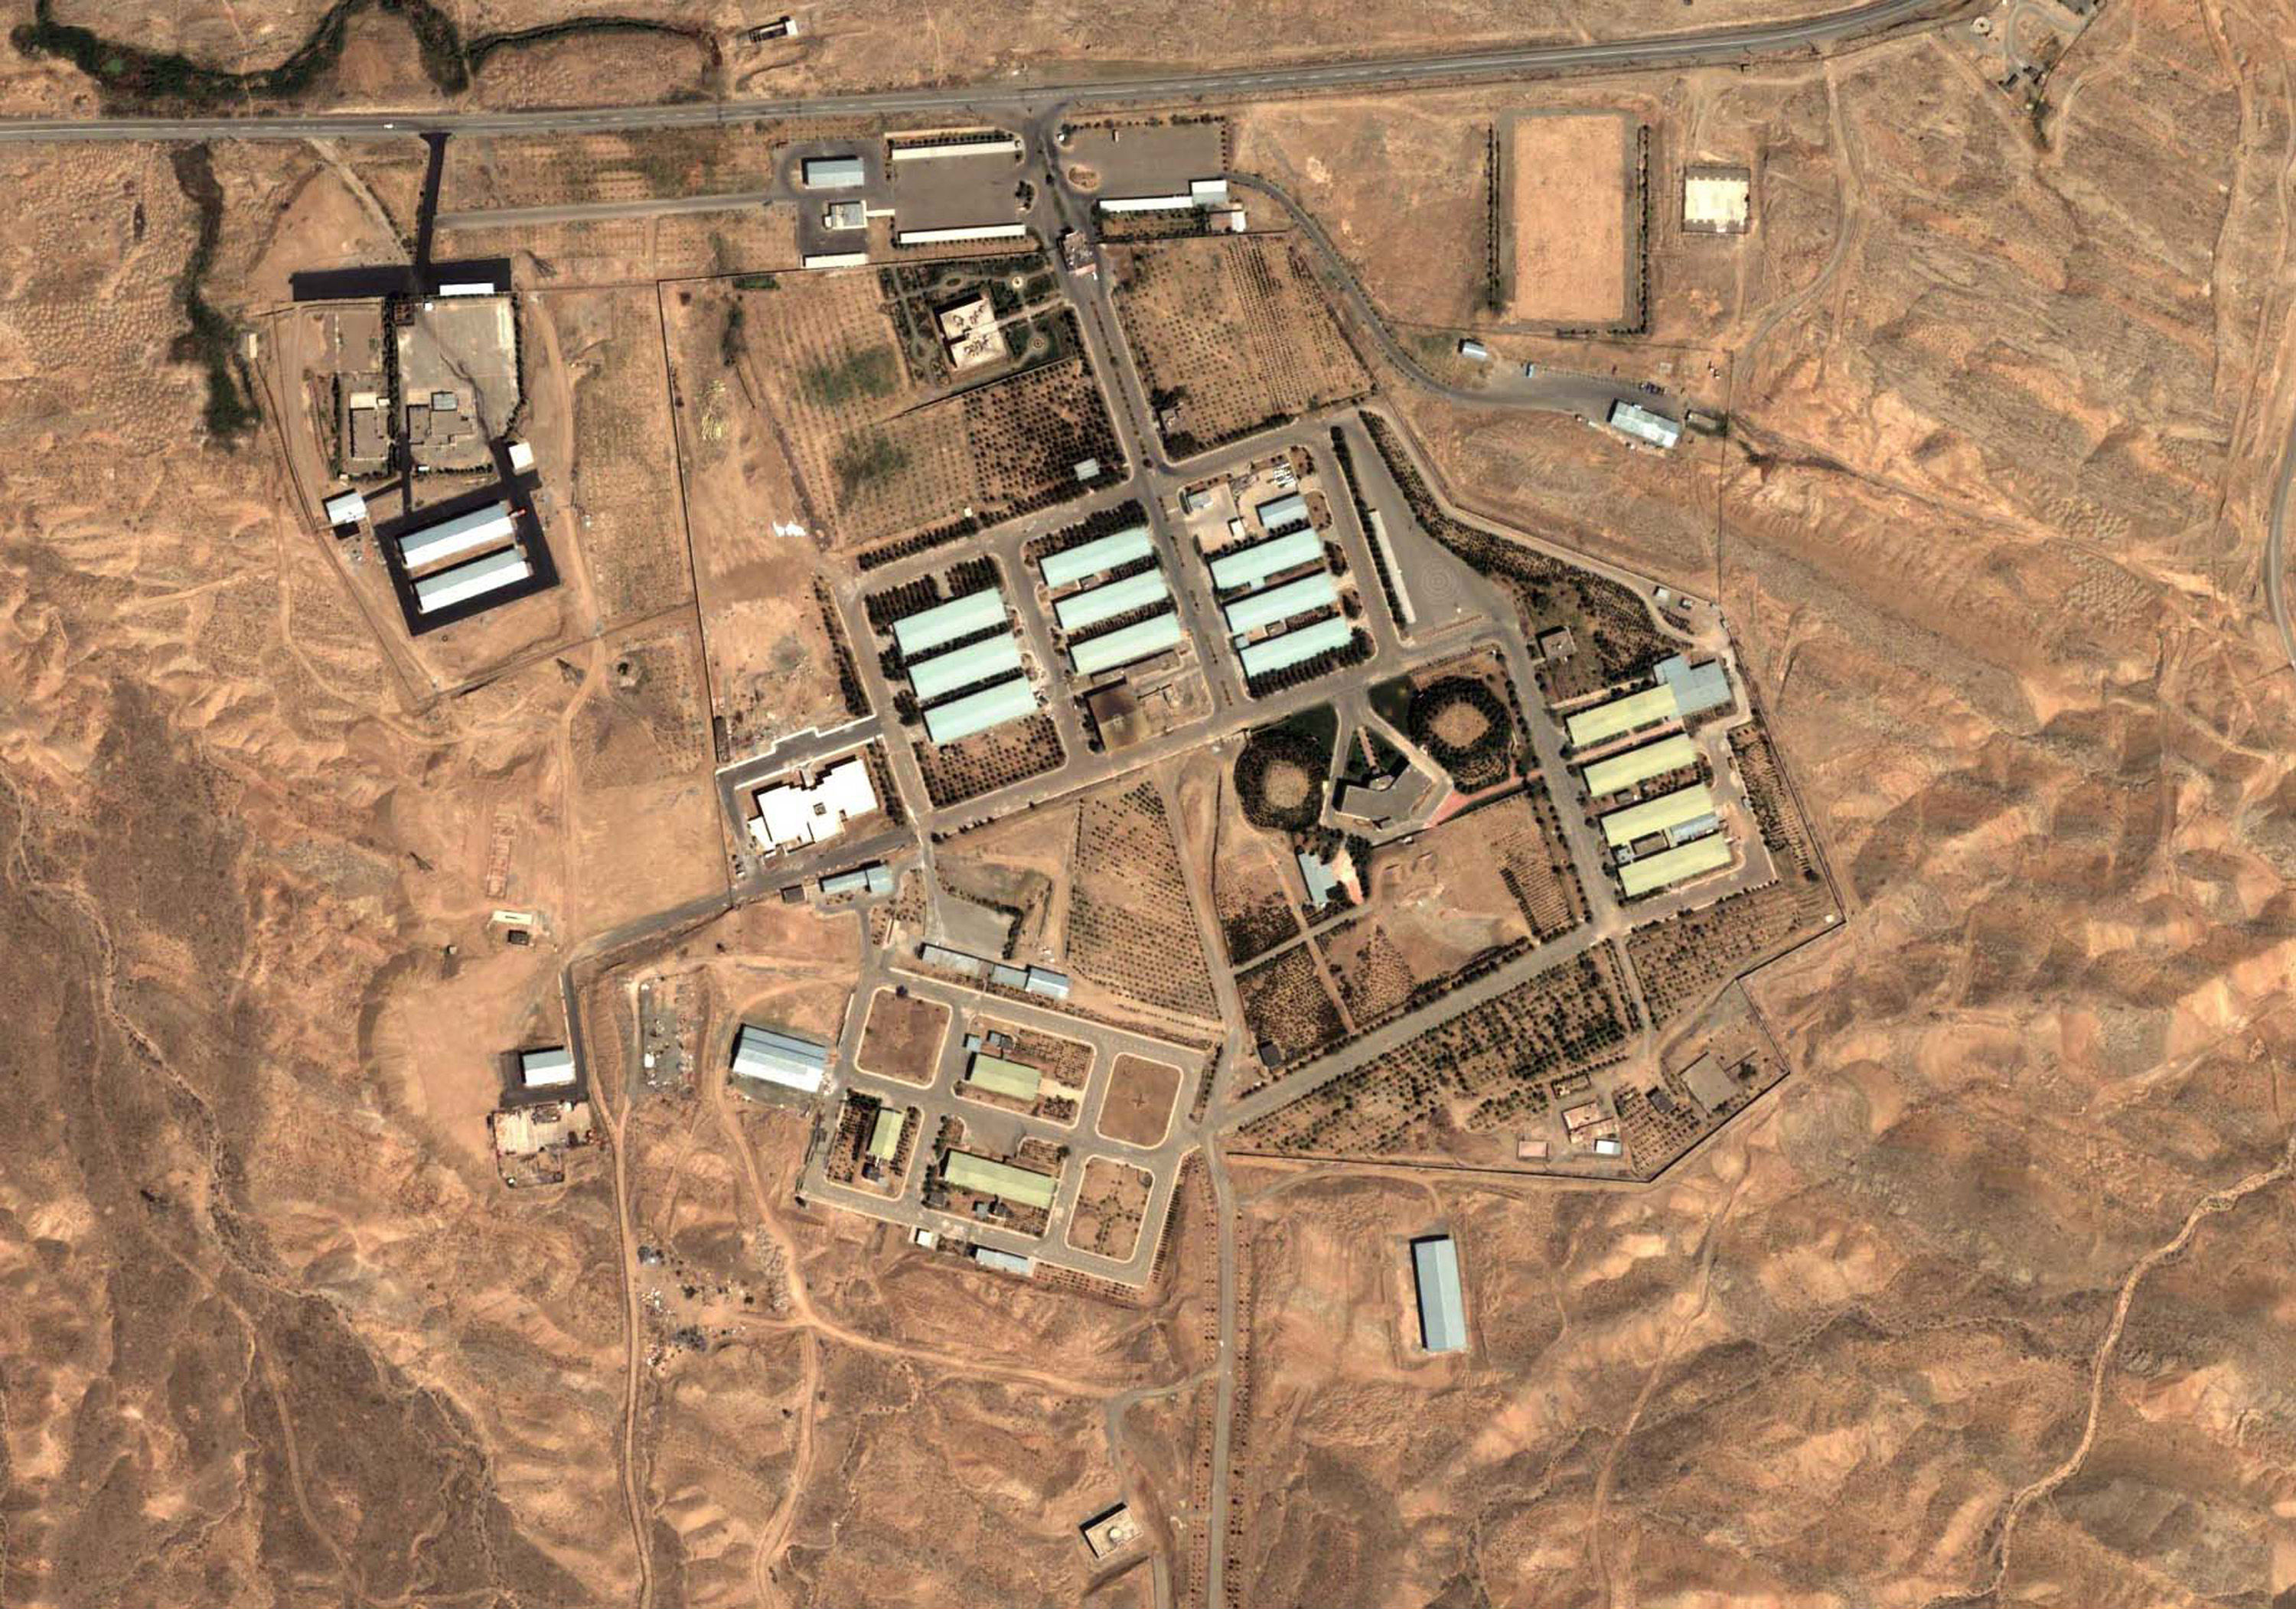 Satellite-image-of-military-complex-at-Parchin-Iran